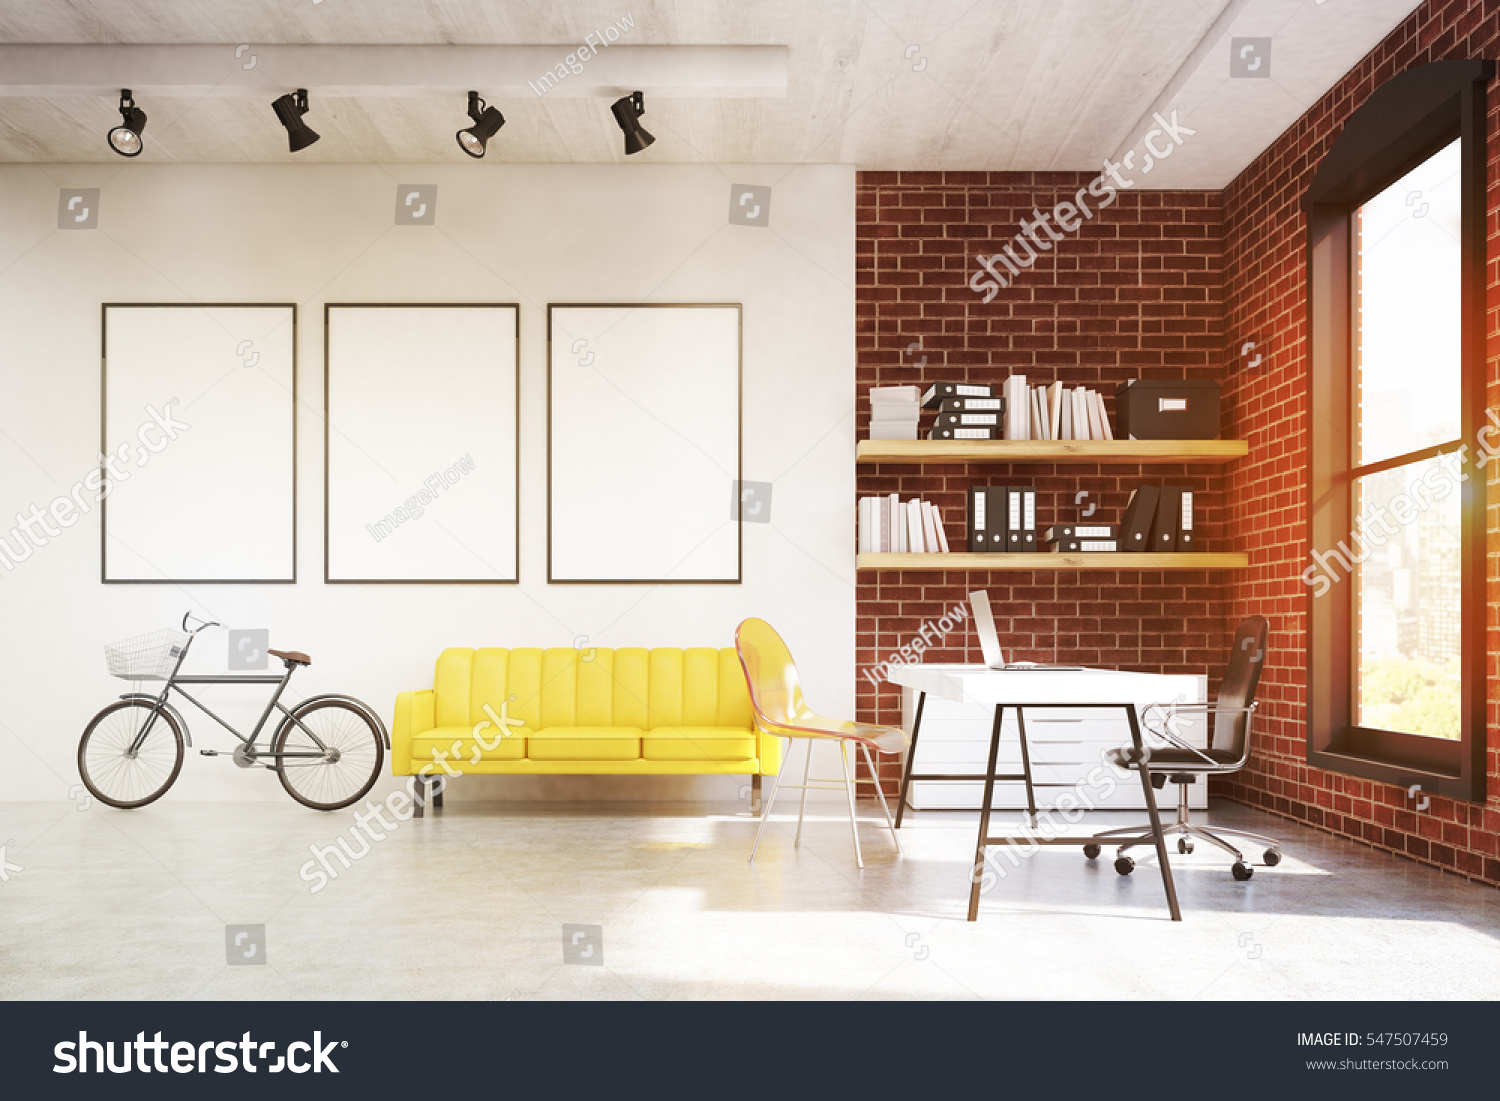 Sofa In Home Office Front View Home Office Interior Yellow Stock Illustration